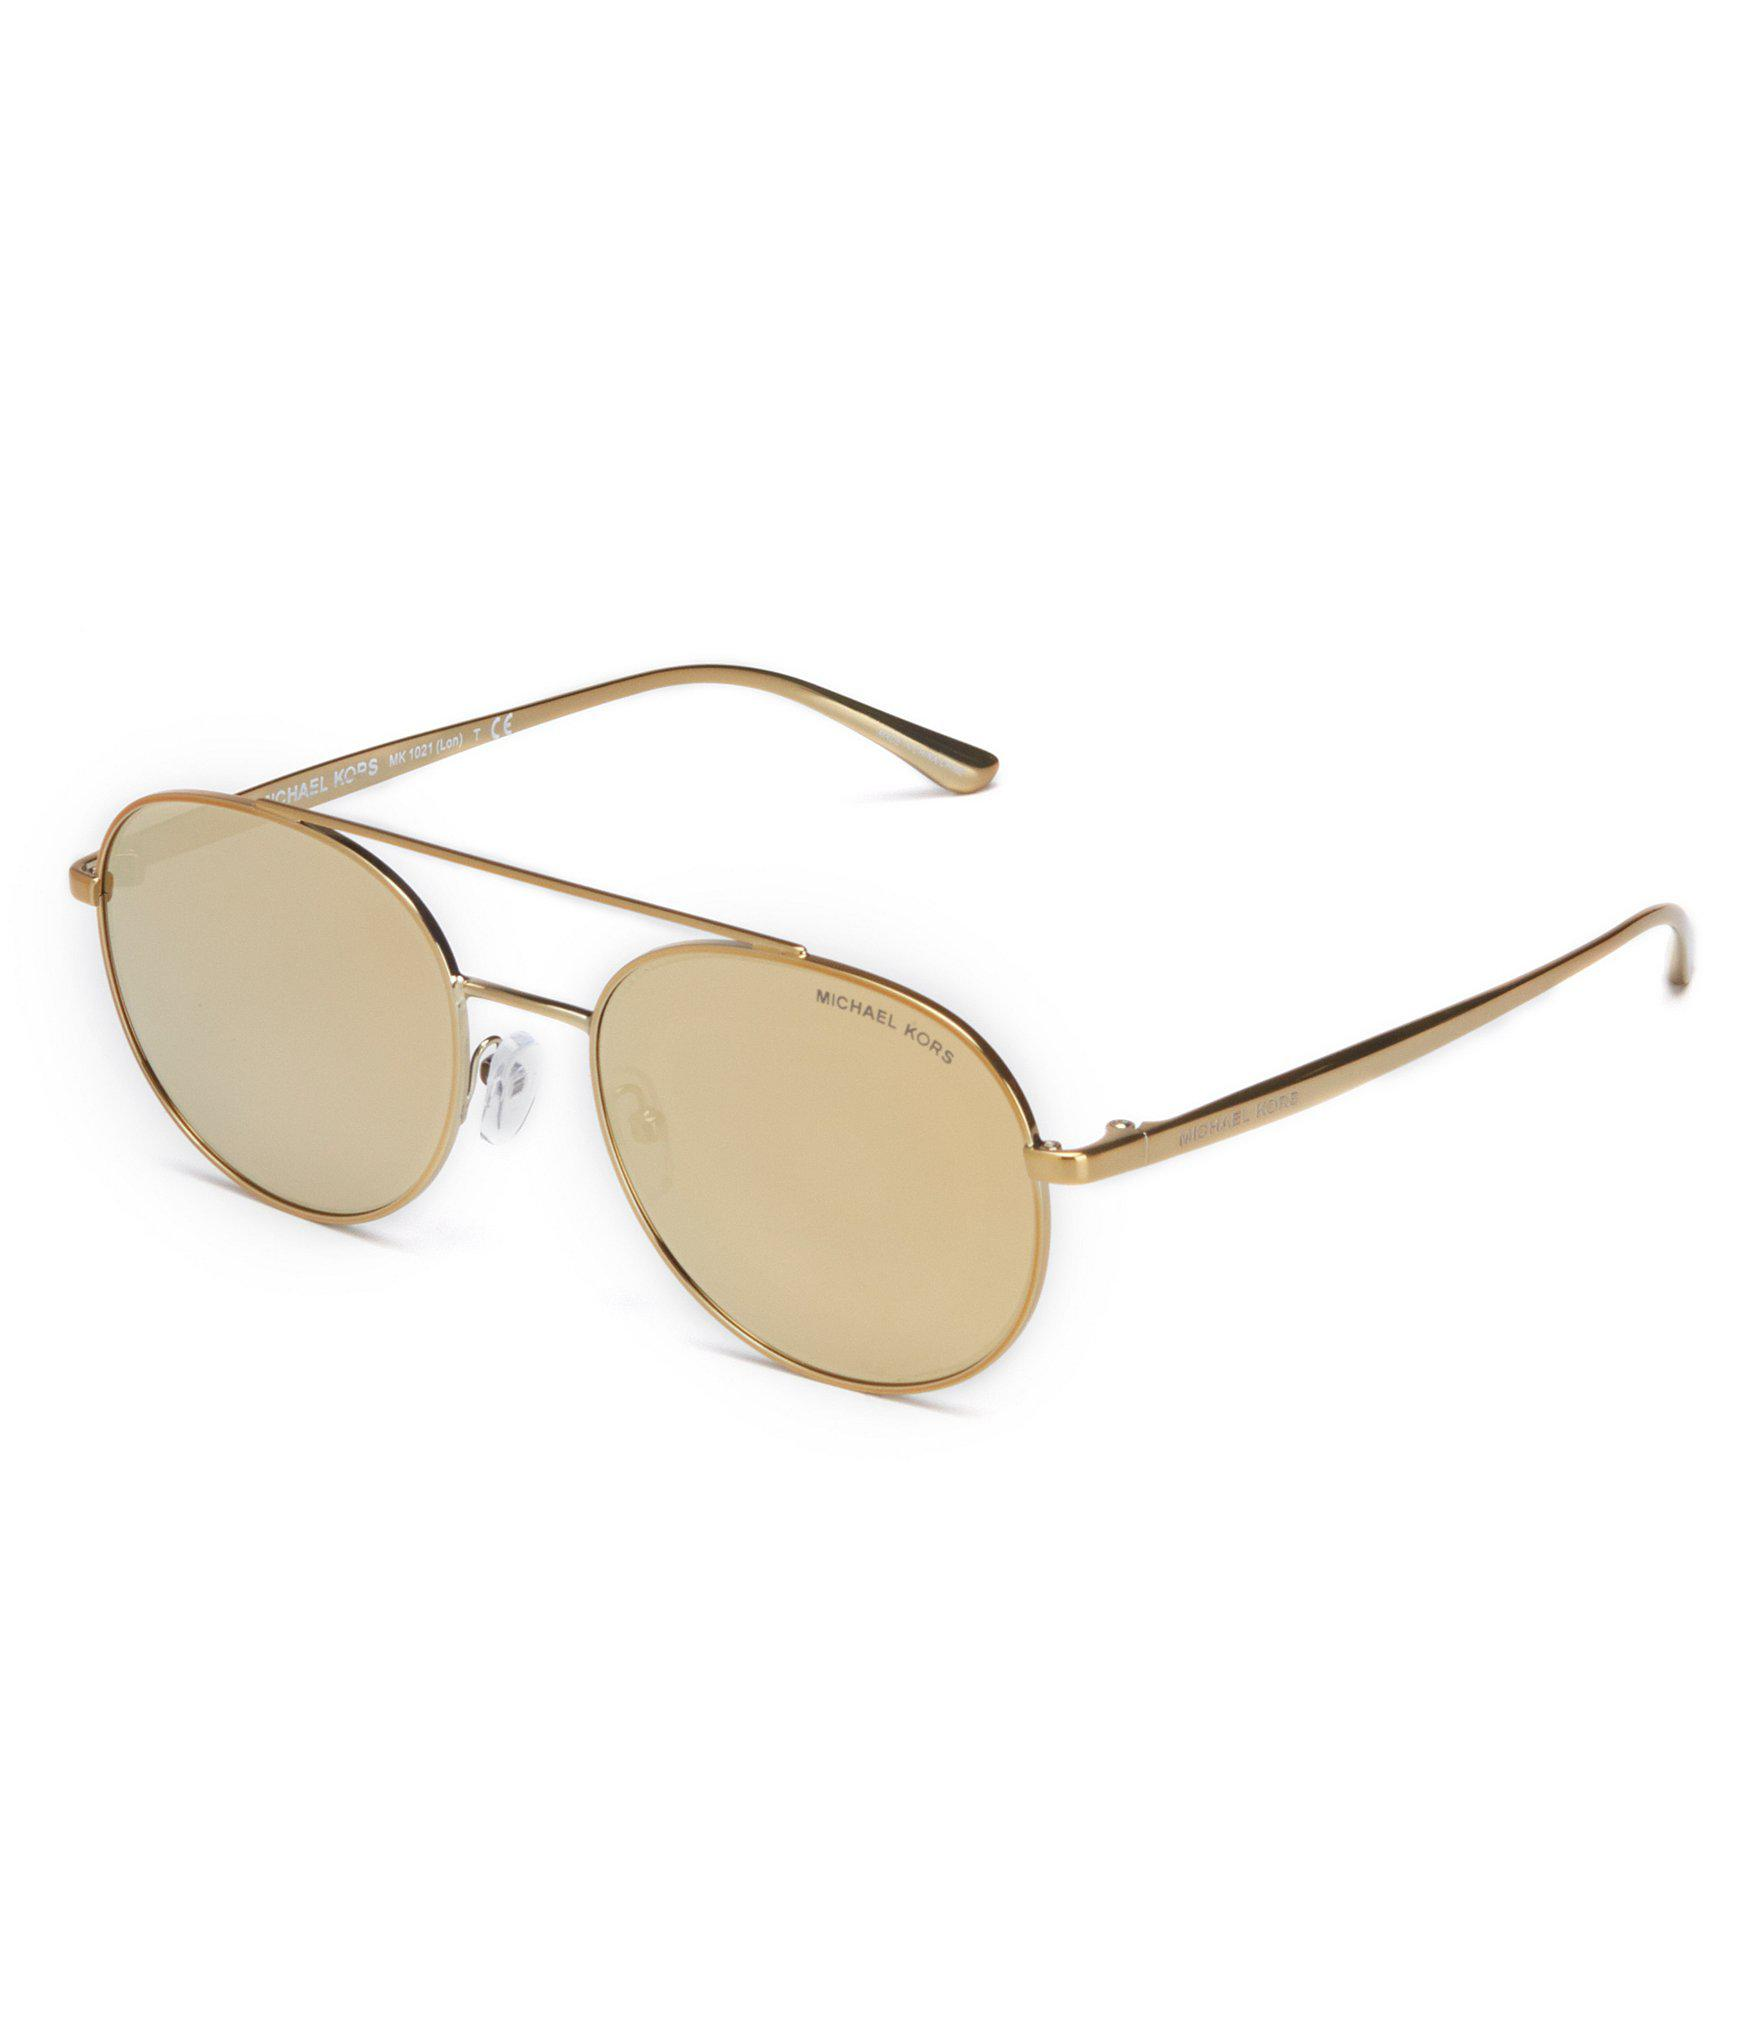 6de5ad9c179 Lyst - Michael Kors Mirrored Aviator Sunglasses in Metallic